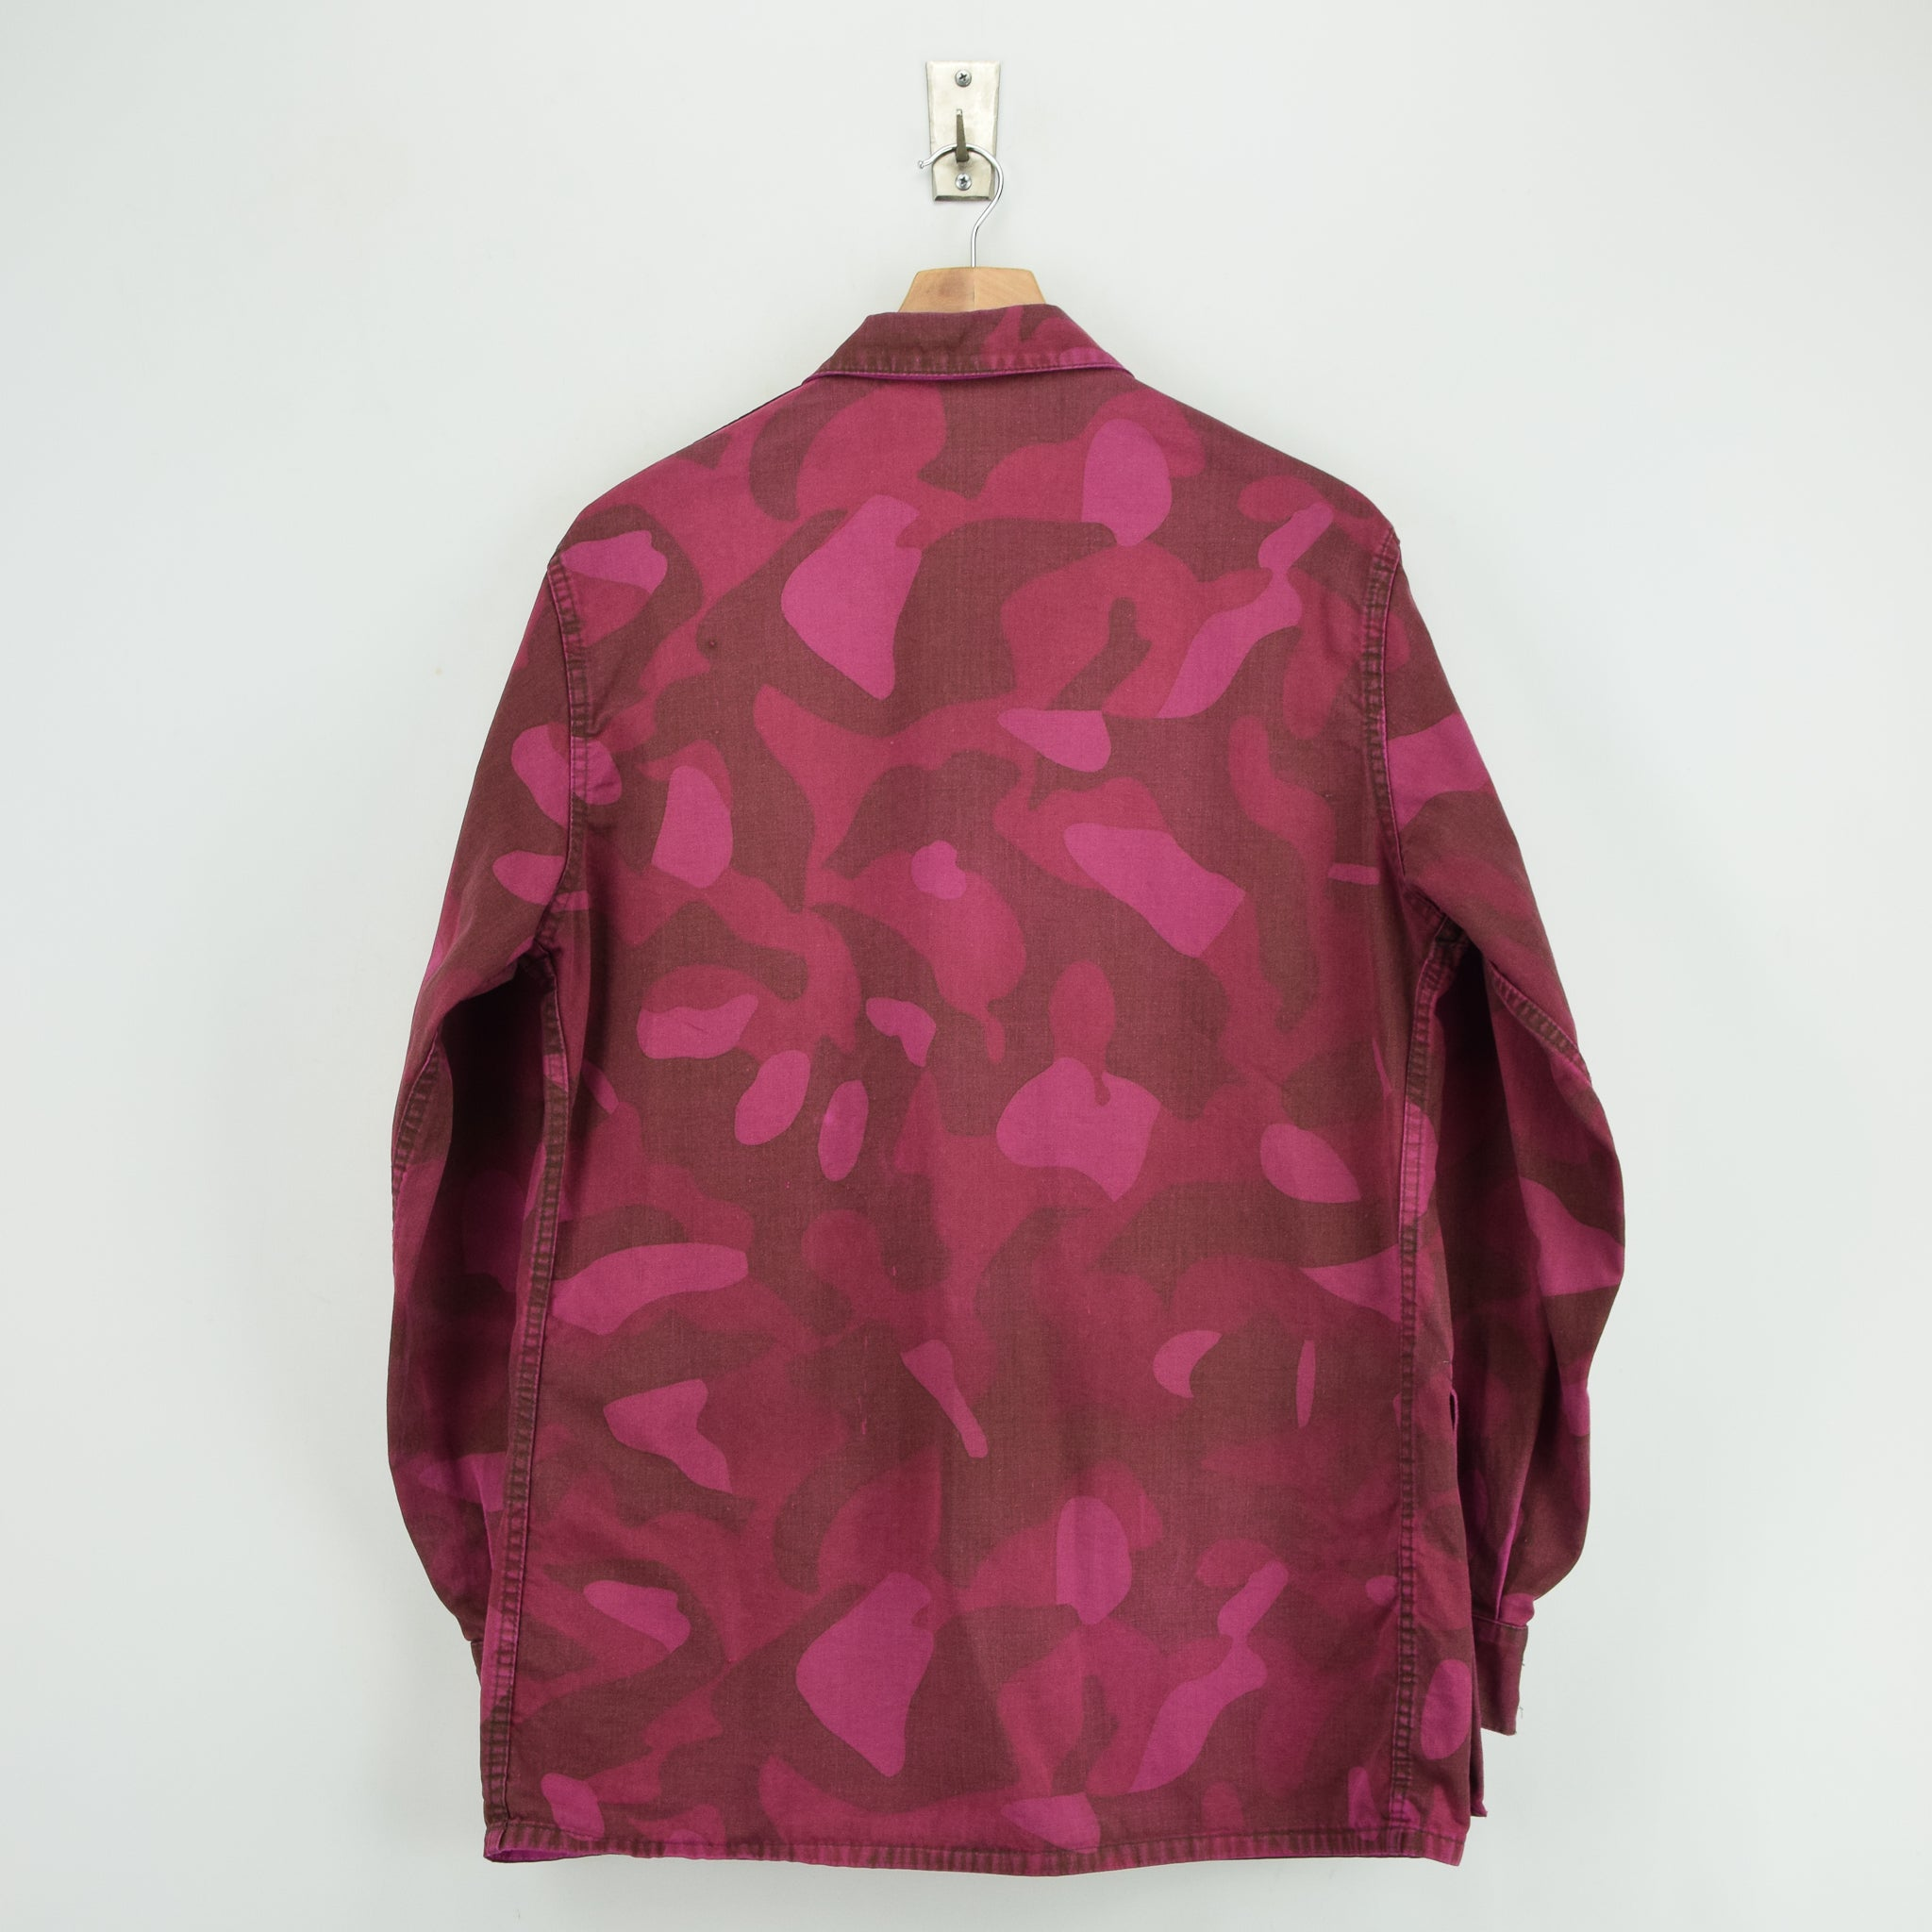 Vintage 70s Military Finnish Army Pink Overdyed Camo Mountain Field Jacket M back